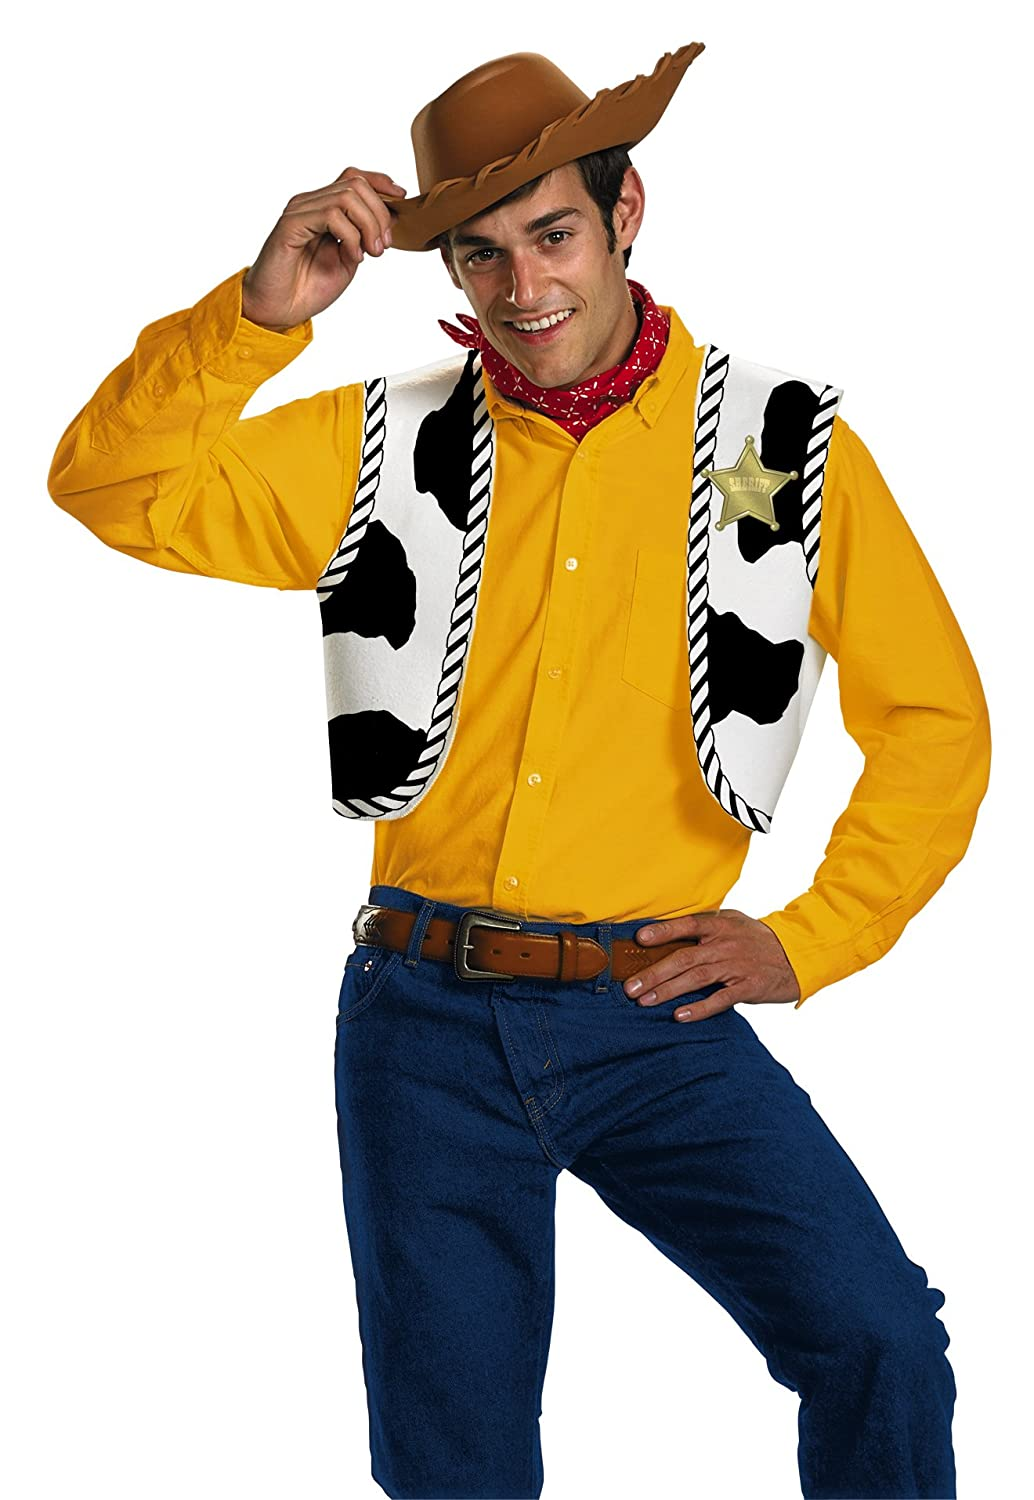 Disney Disguise Men's Pixar Toy Story and Beyond Woody Adult Costume Kit Yellow/Black/White/Brown One Size Disguise Costumes 23433